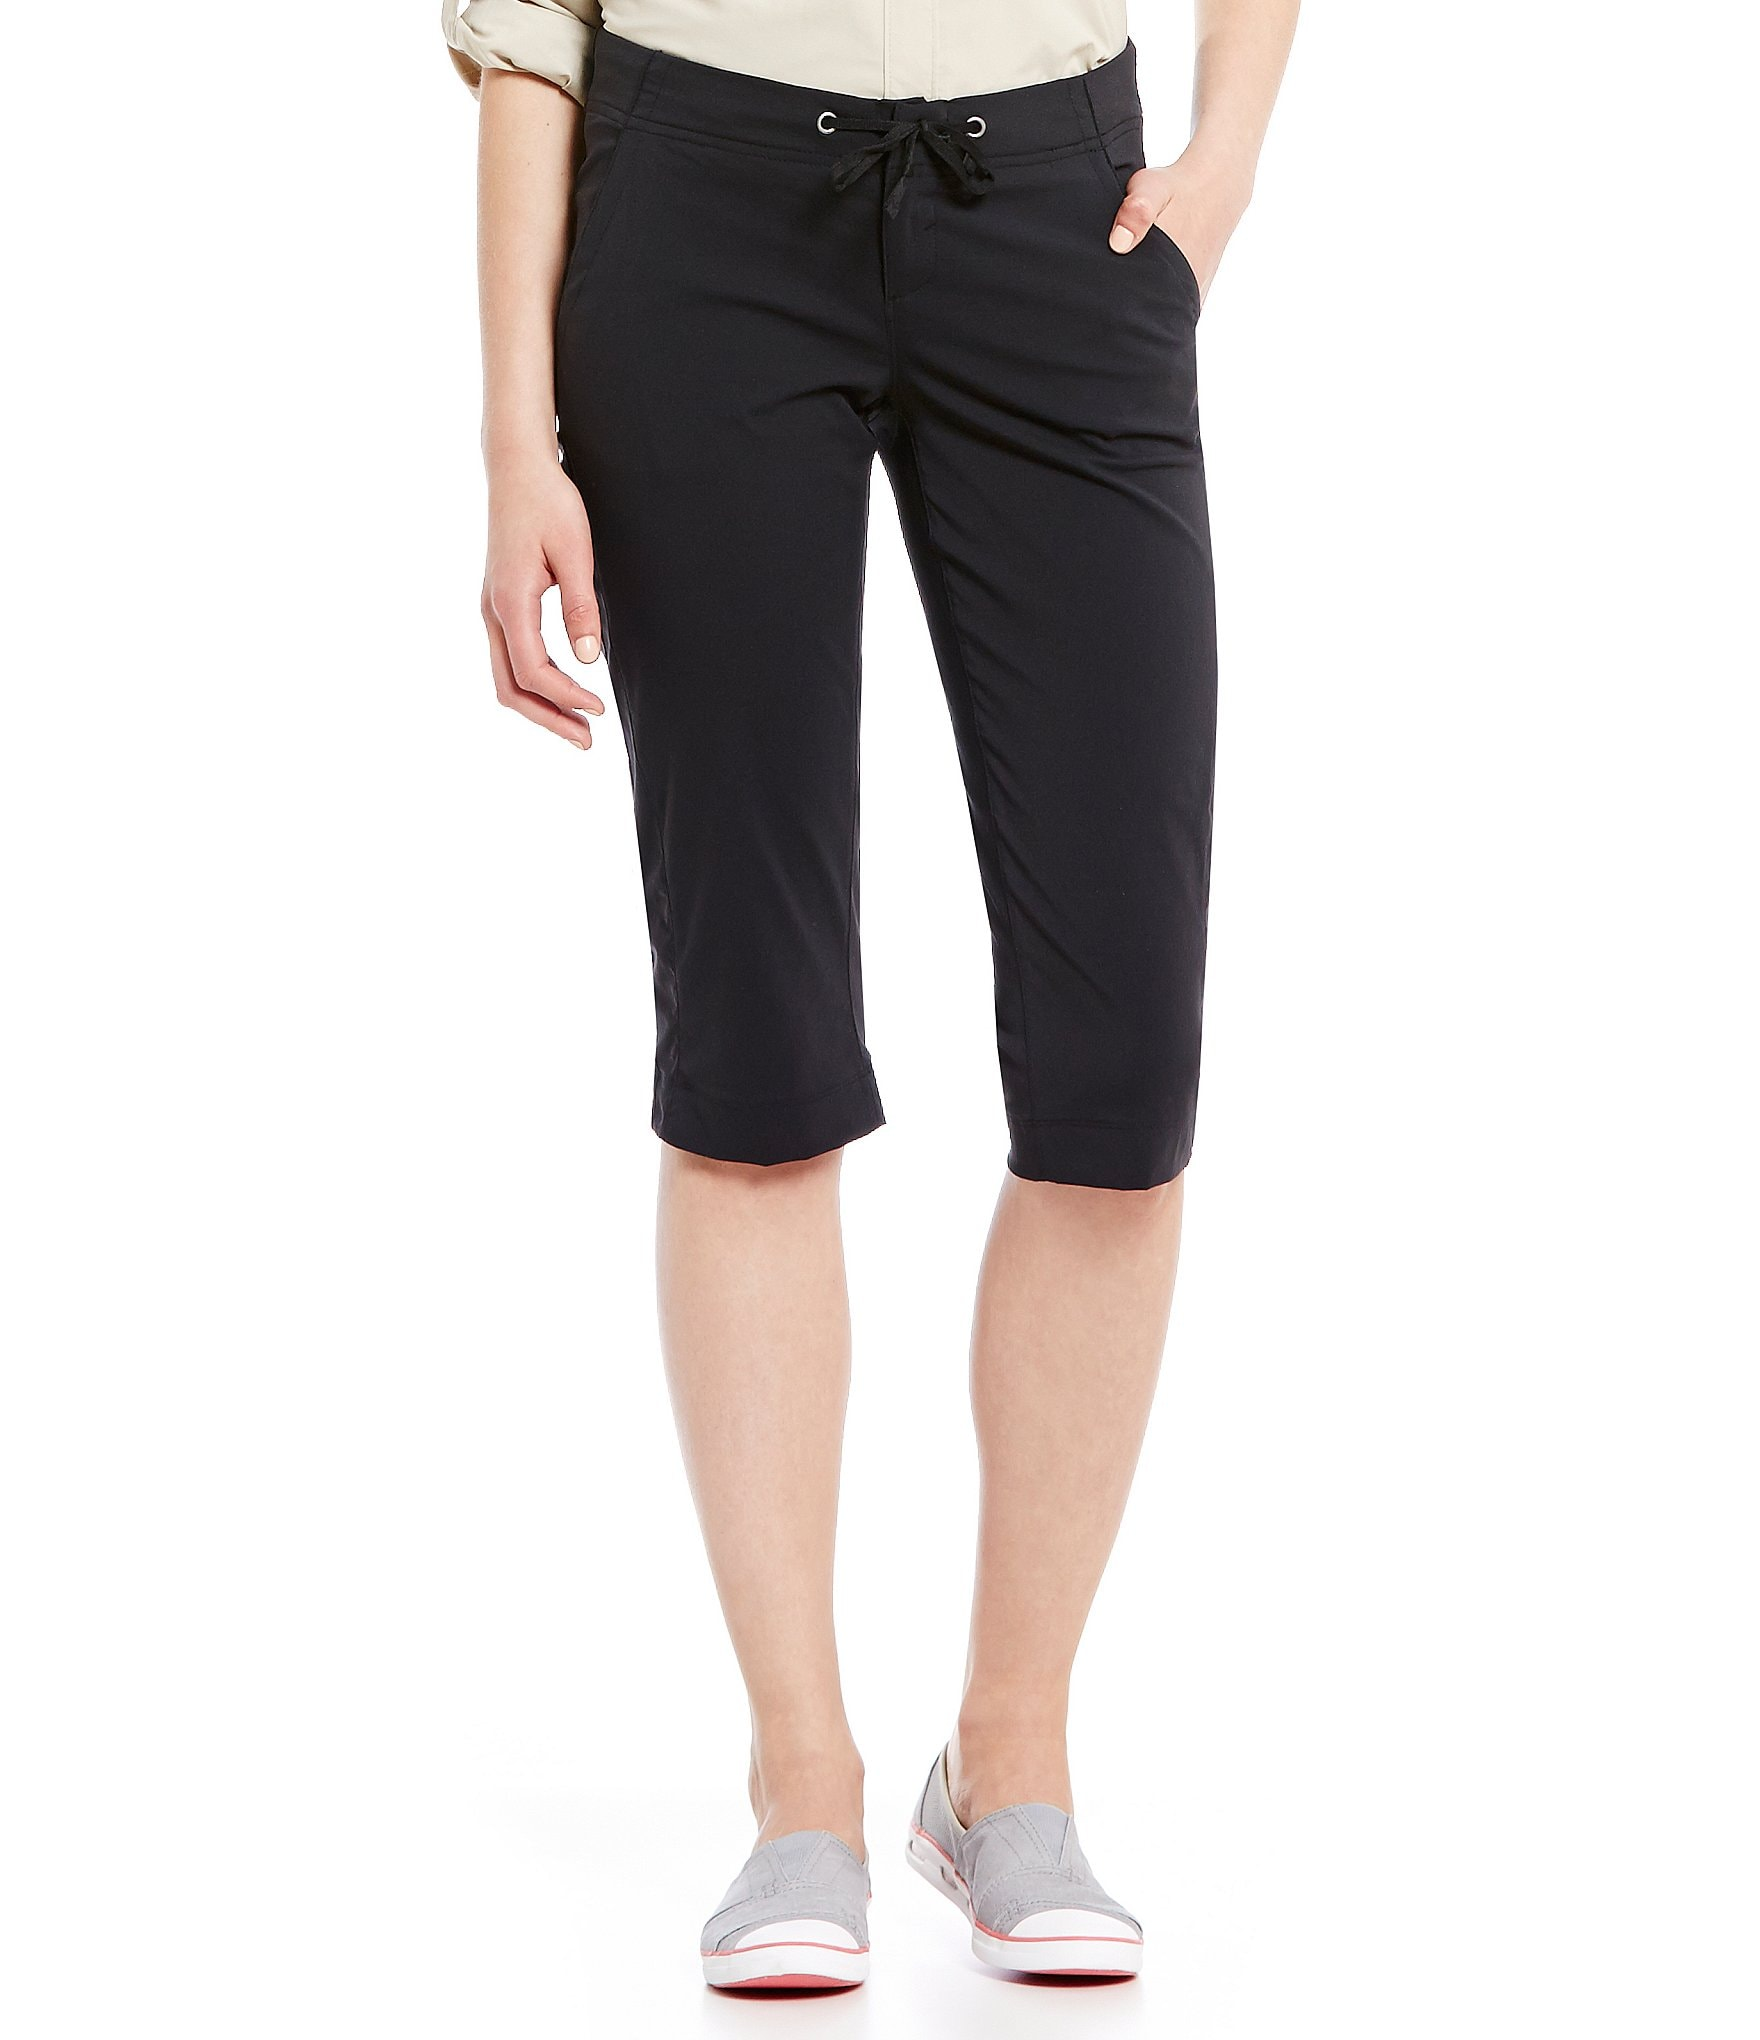 Free shipping on cropped & capri pants for women a gtacashbank.ga Shop by rise, material, size and more from the best brands. Free shipping & returns.